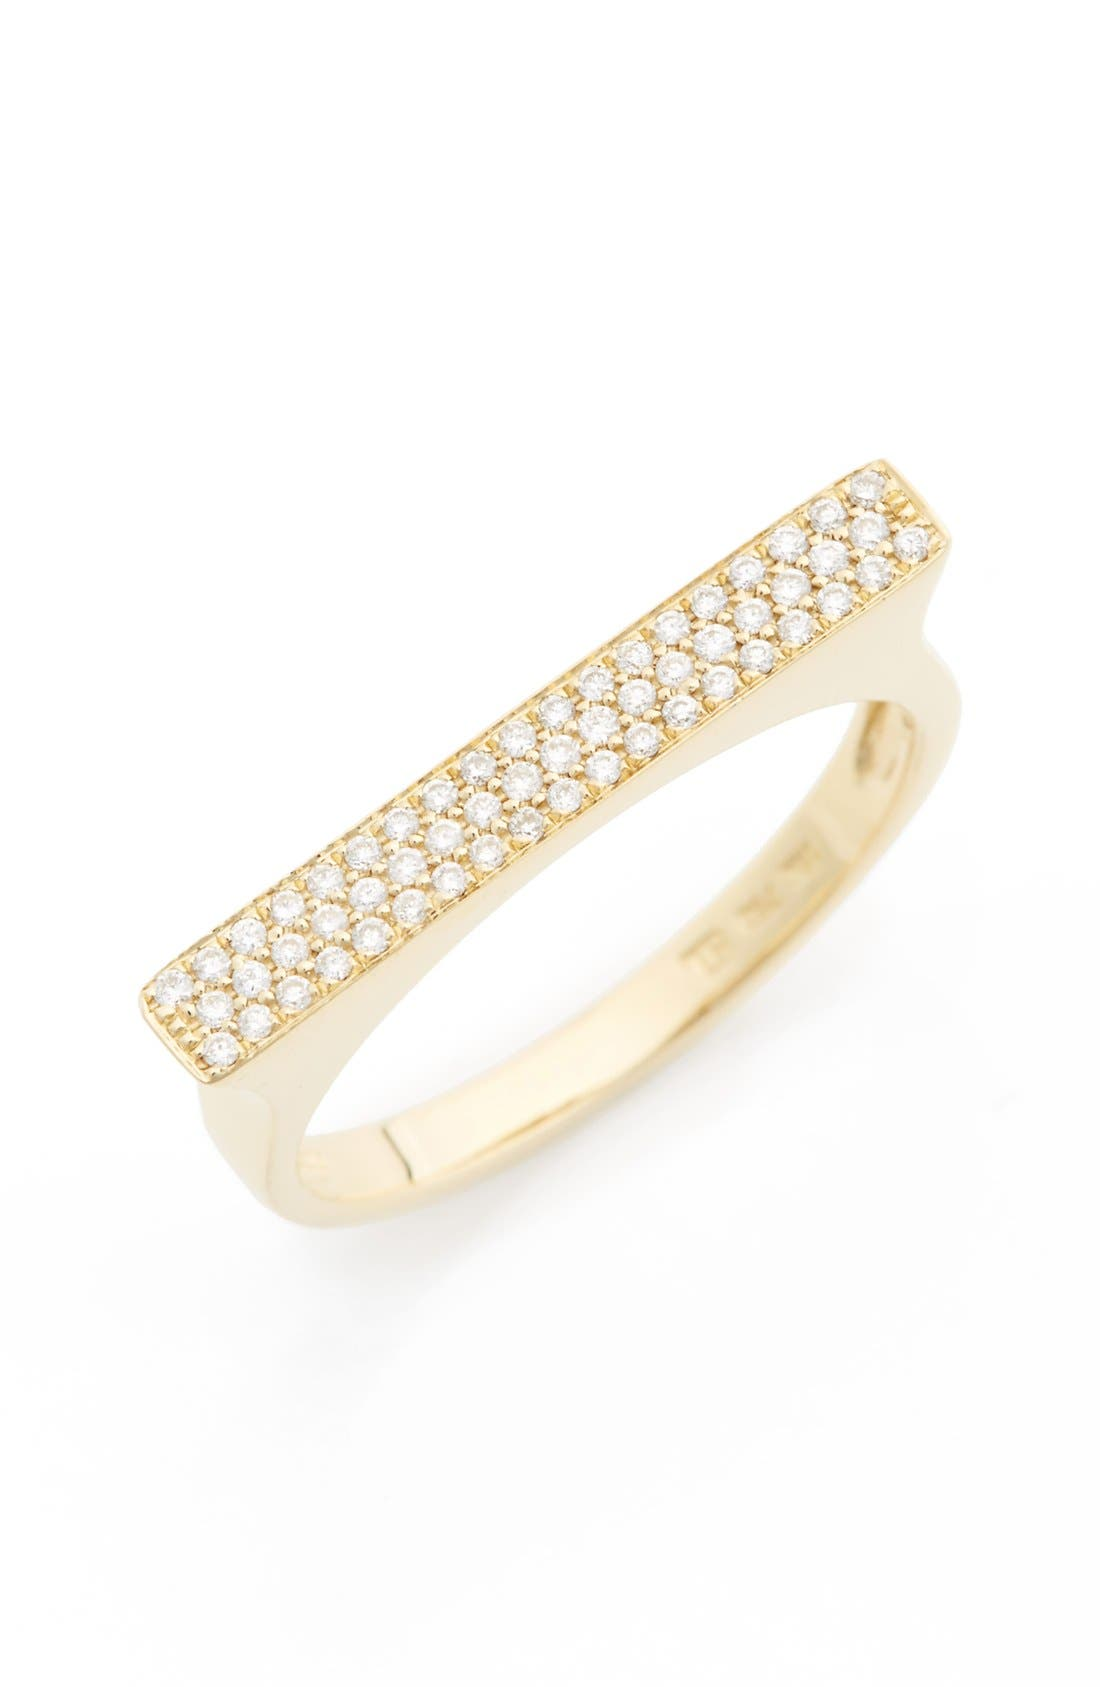 Main Image - Bony Levy Diamond Bar Ring (Nordstrom Exclusive)